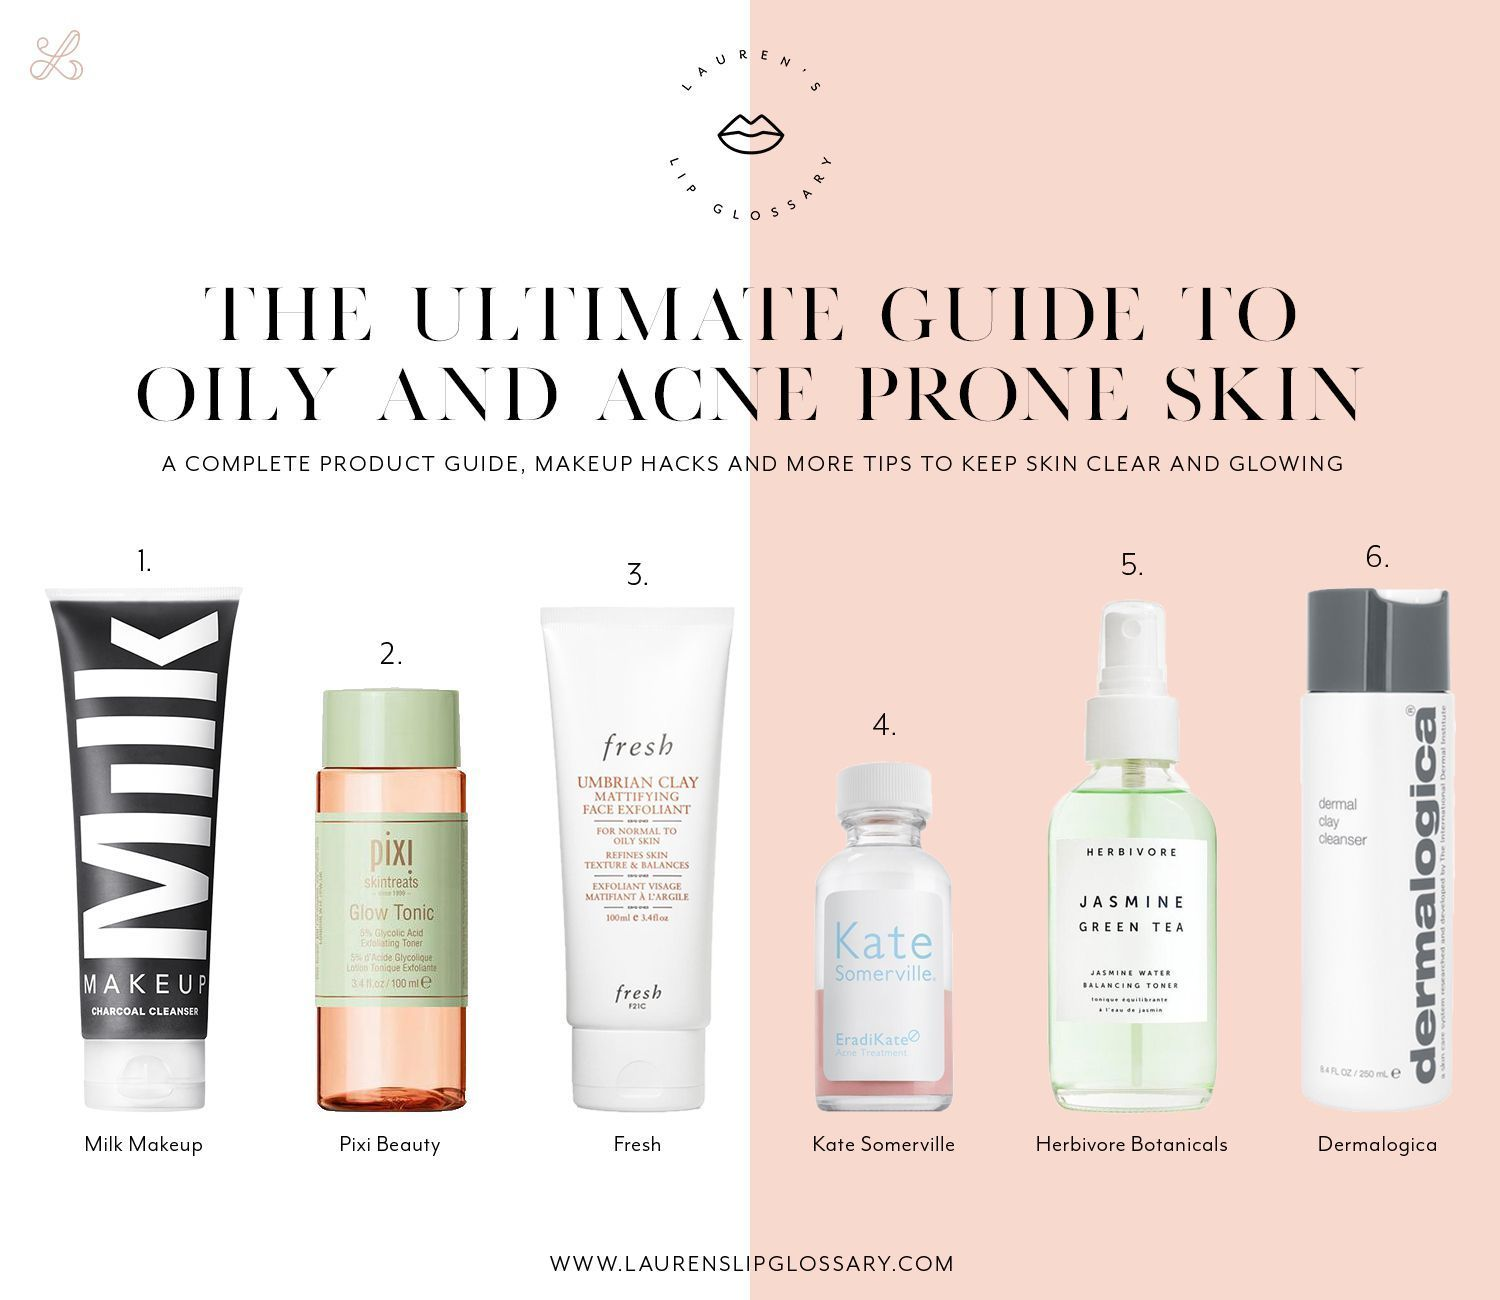 Everything You Need To Know So Your Skin Stays Clear And Glowing Not Greasy I Ll Show You What An Ideal Skincar Acne Prone Anti Aging Skin Products Oily Skin